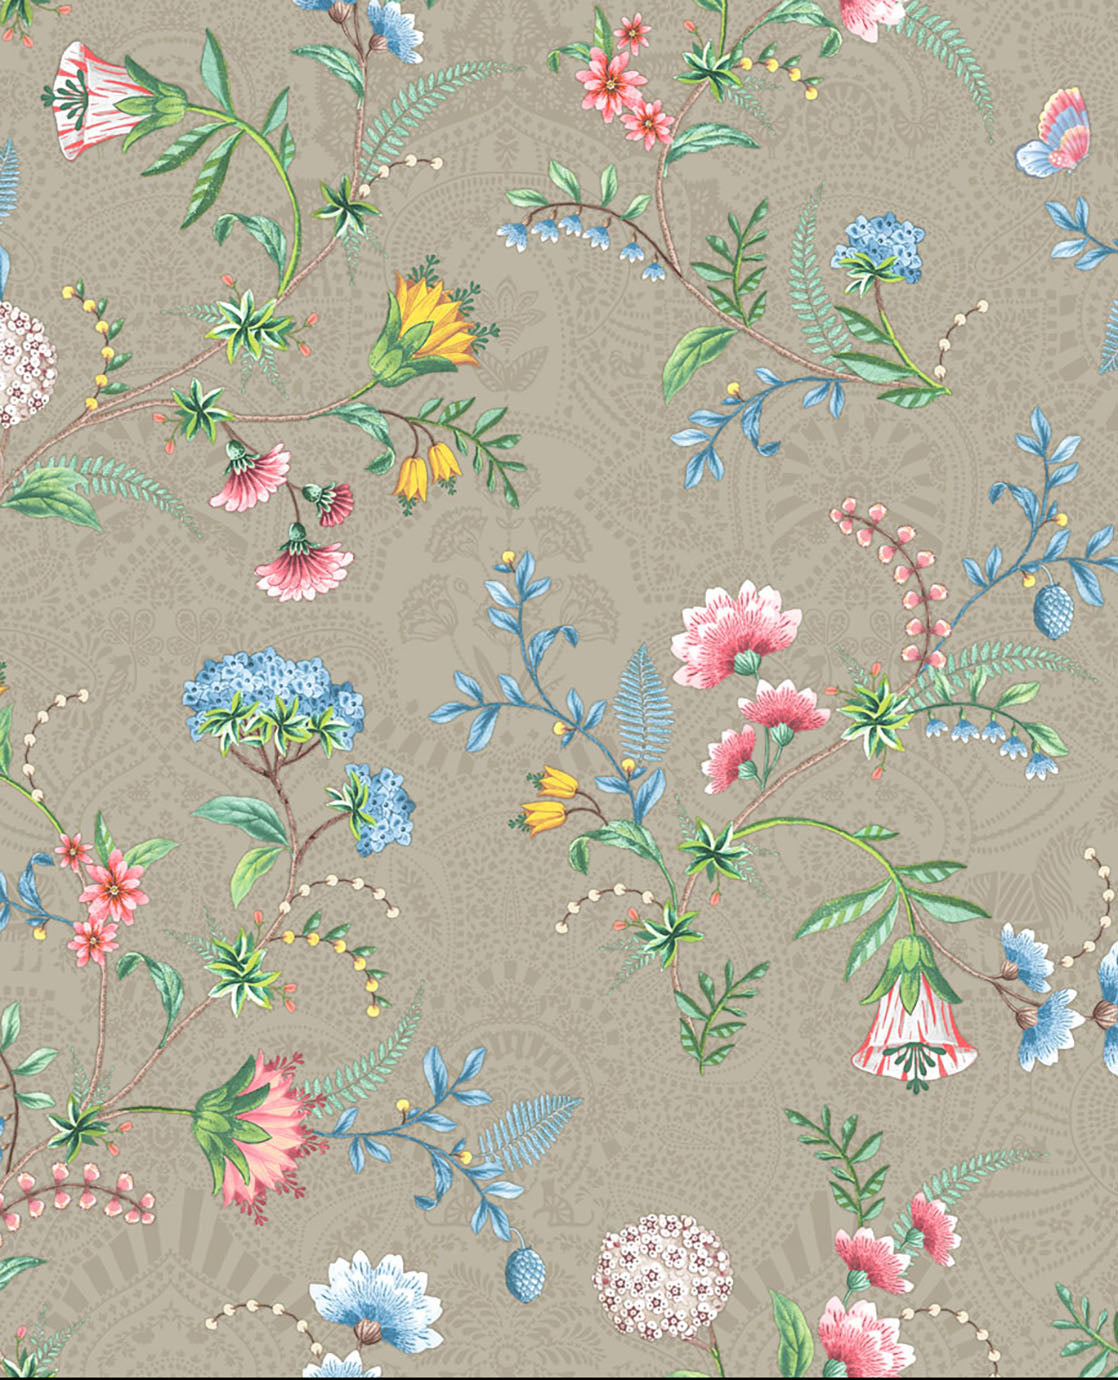 Pip Studio No 120 Wall Paper, Beige/Multi Colour